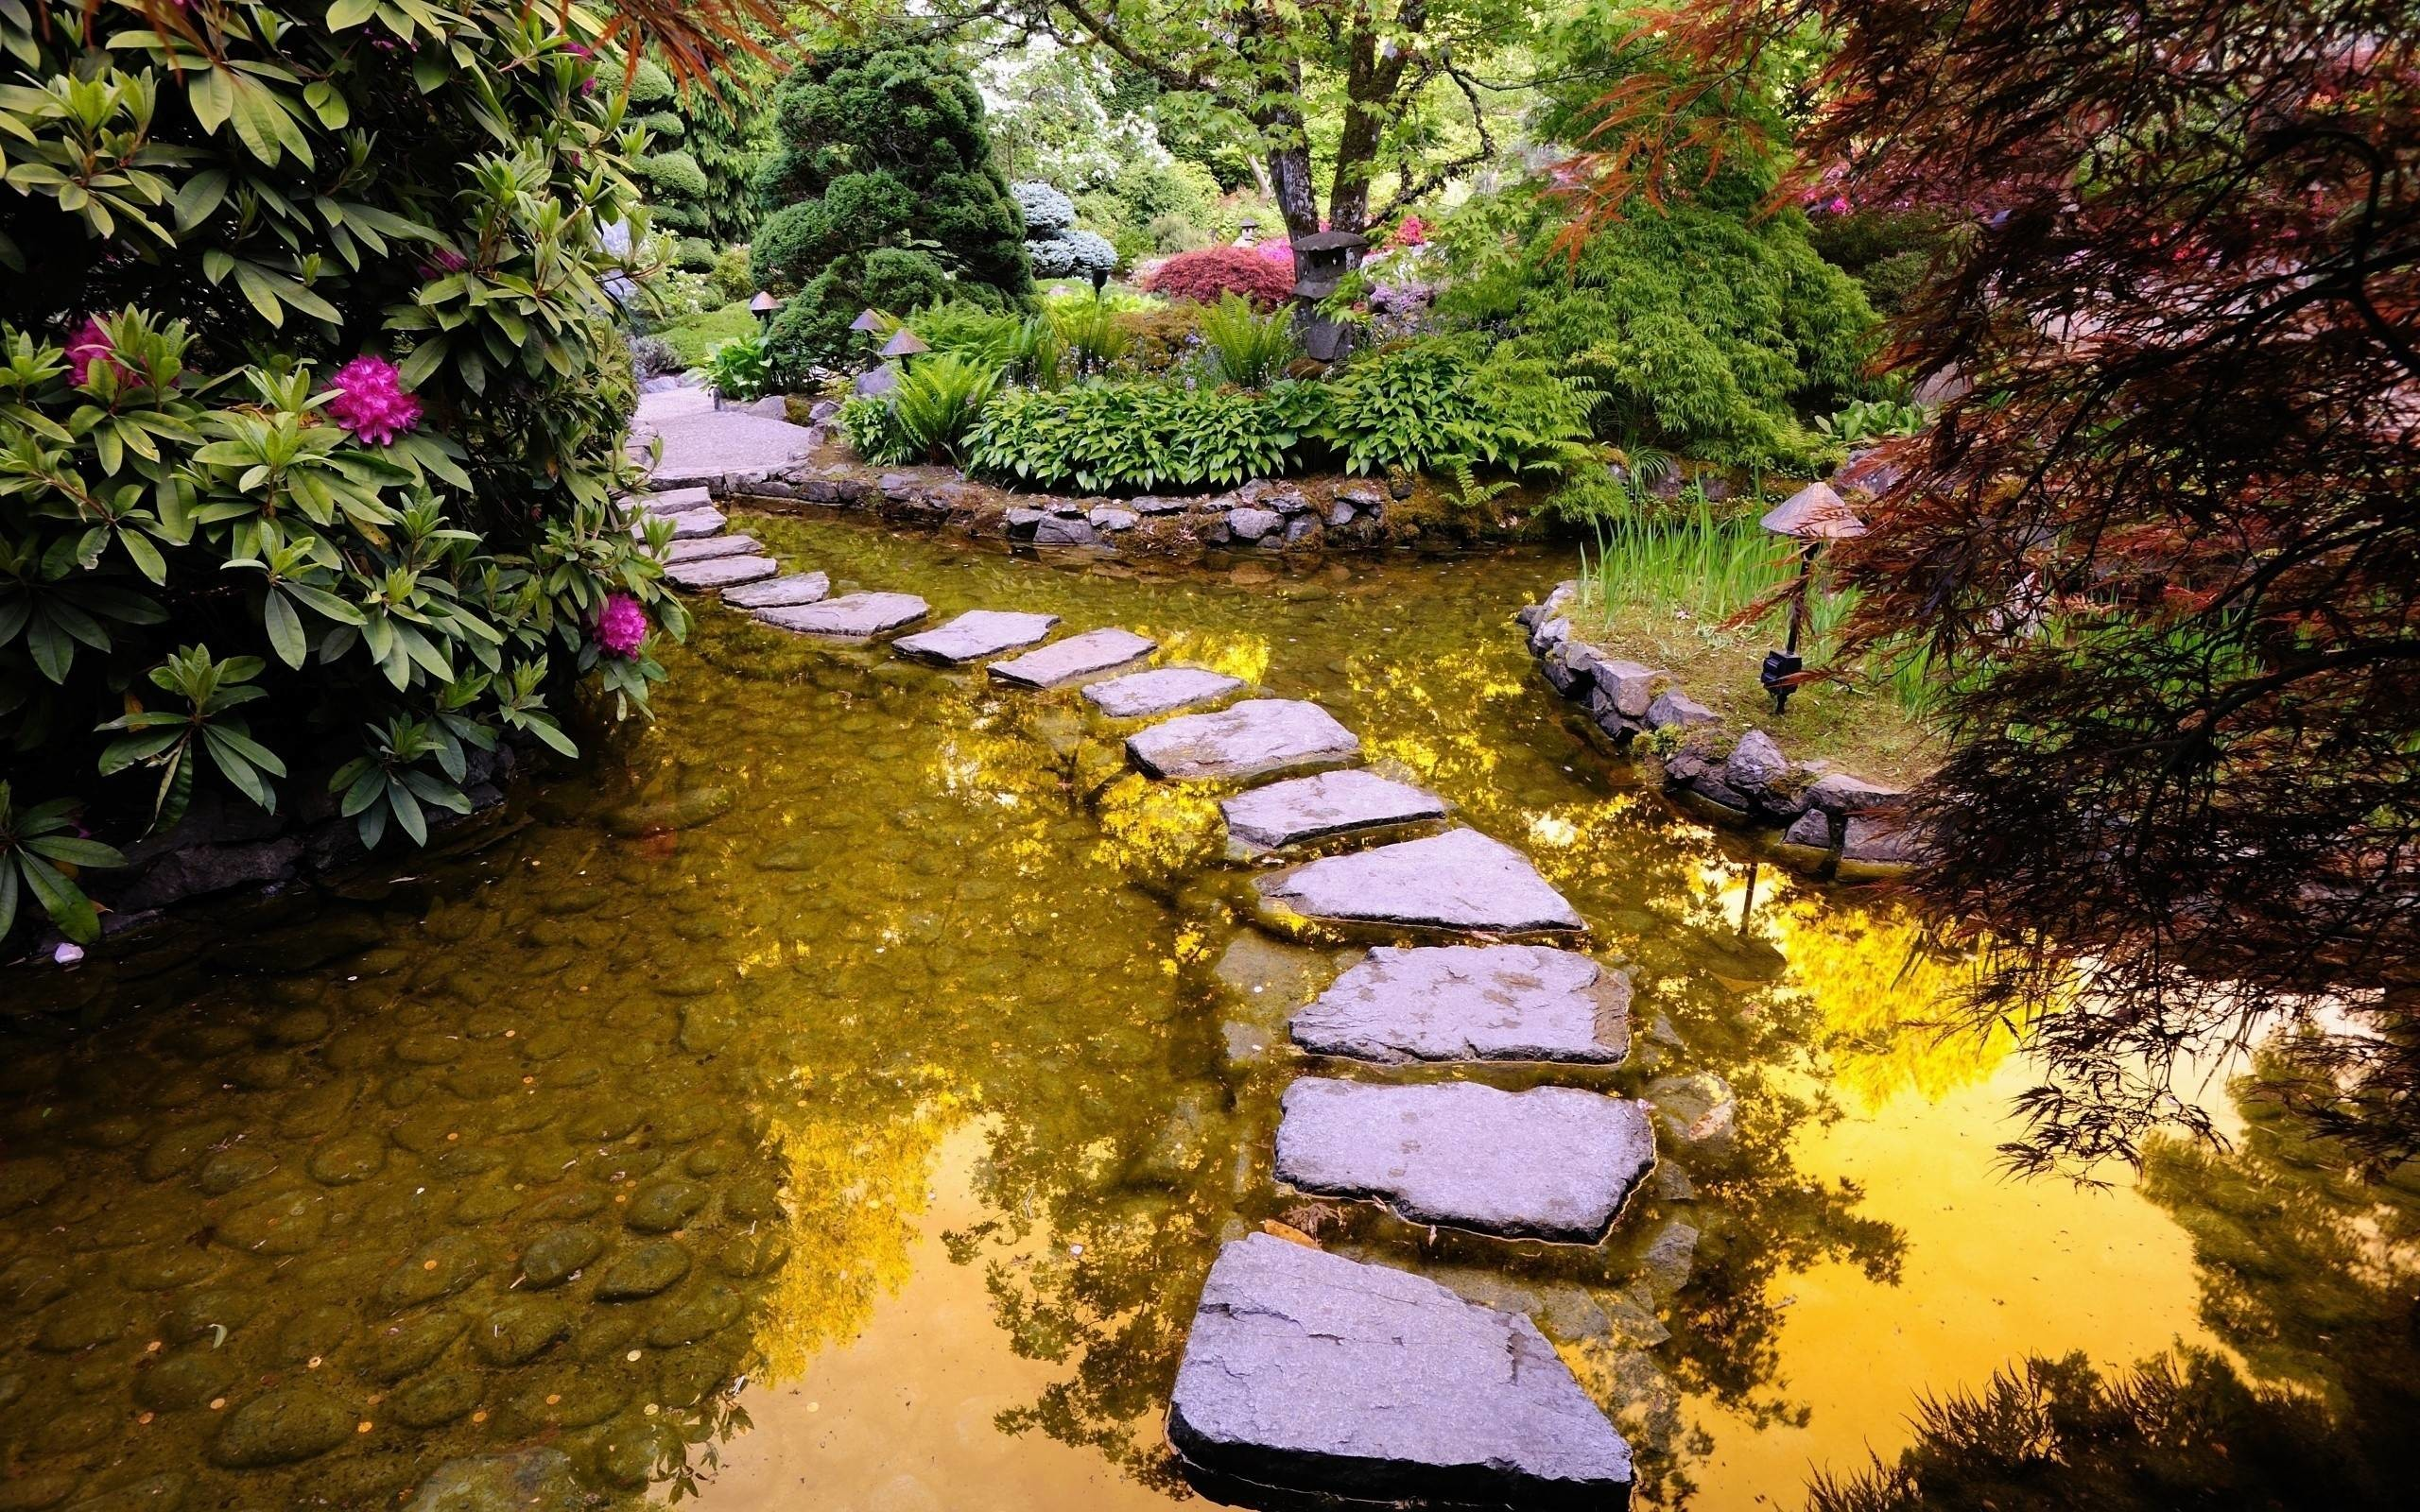 2560x1600 Free Path In Garden Pond Wallpapers, Free Path In Garden Pond HD .